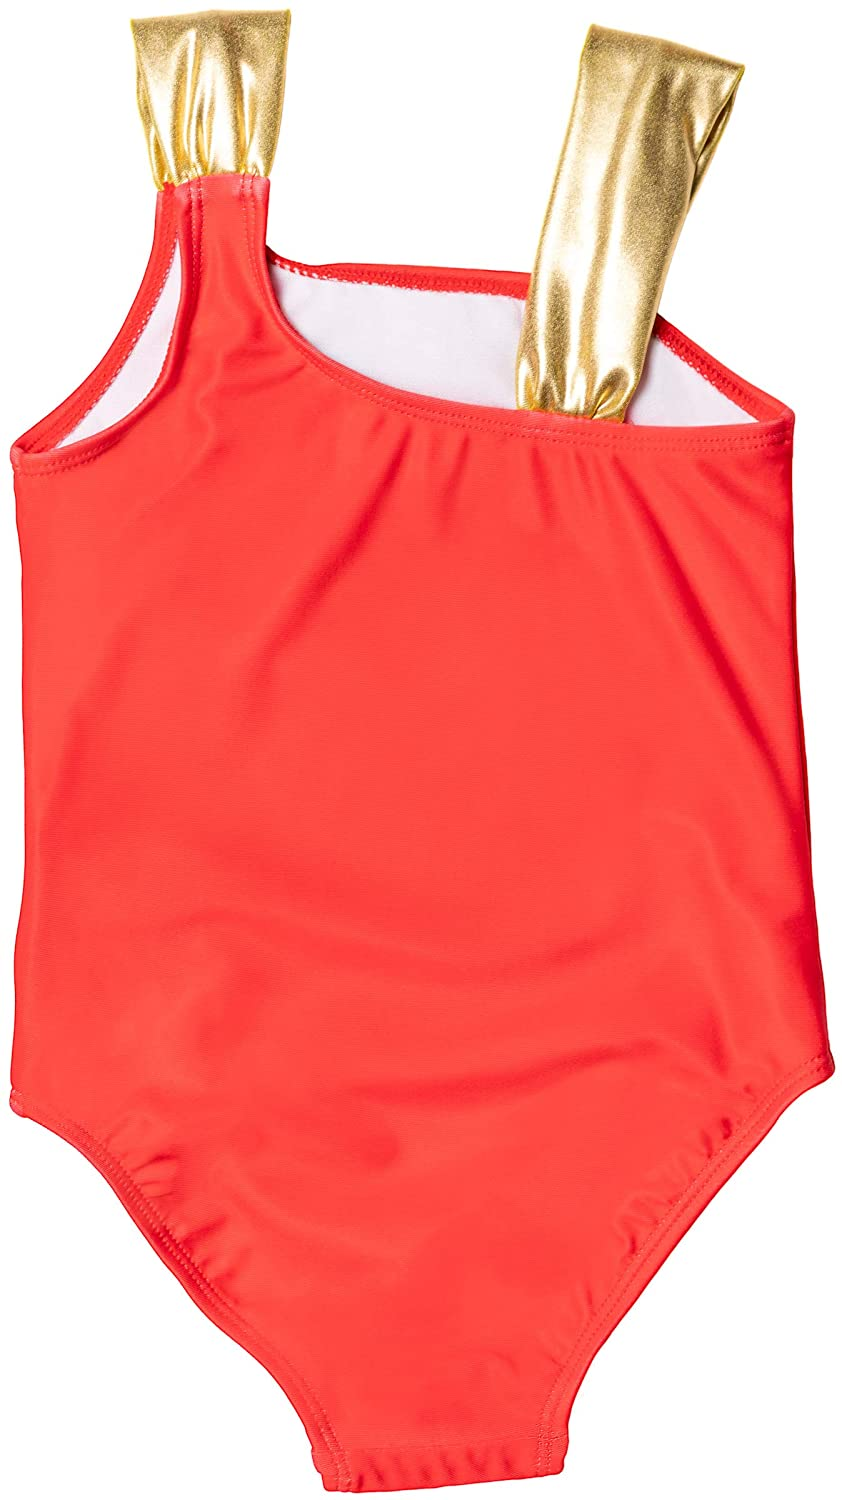 Wonder Woman Toddler Girls' Bathing Suit One Piece Swimsuit, 2T-4T, Red